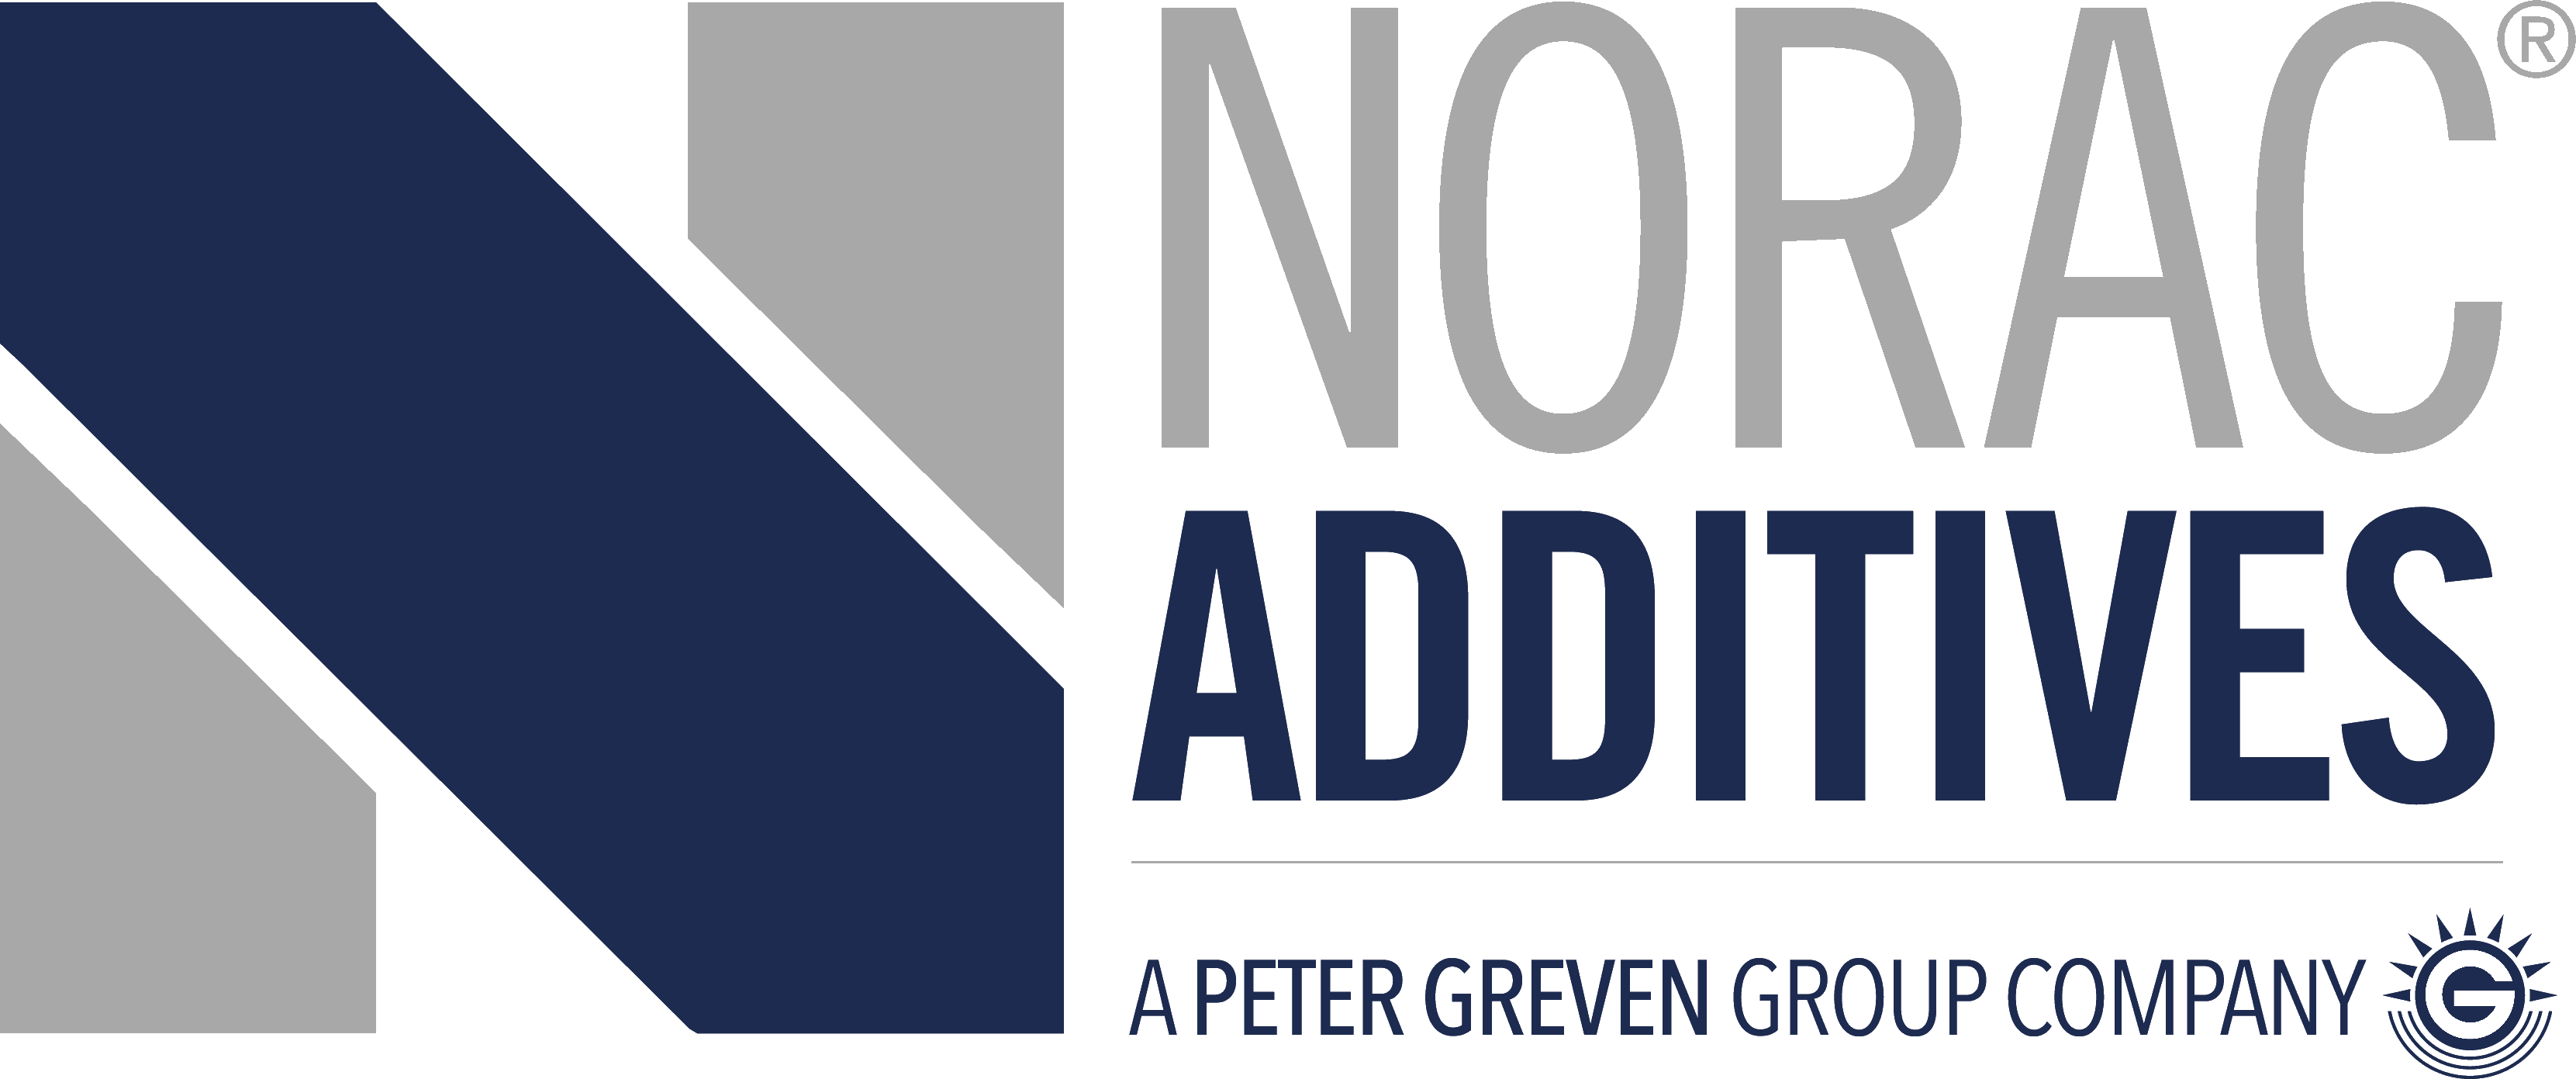 Norac Additives LLC ©